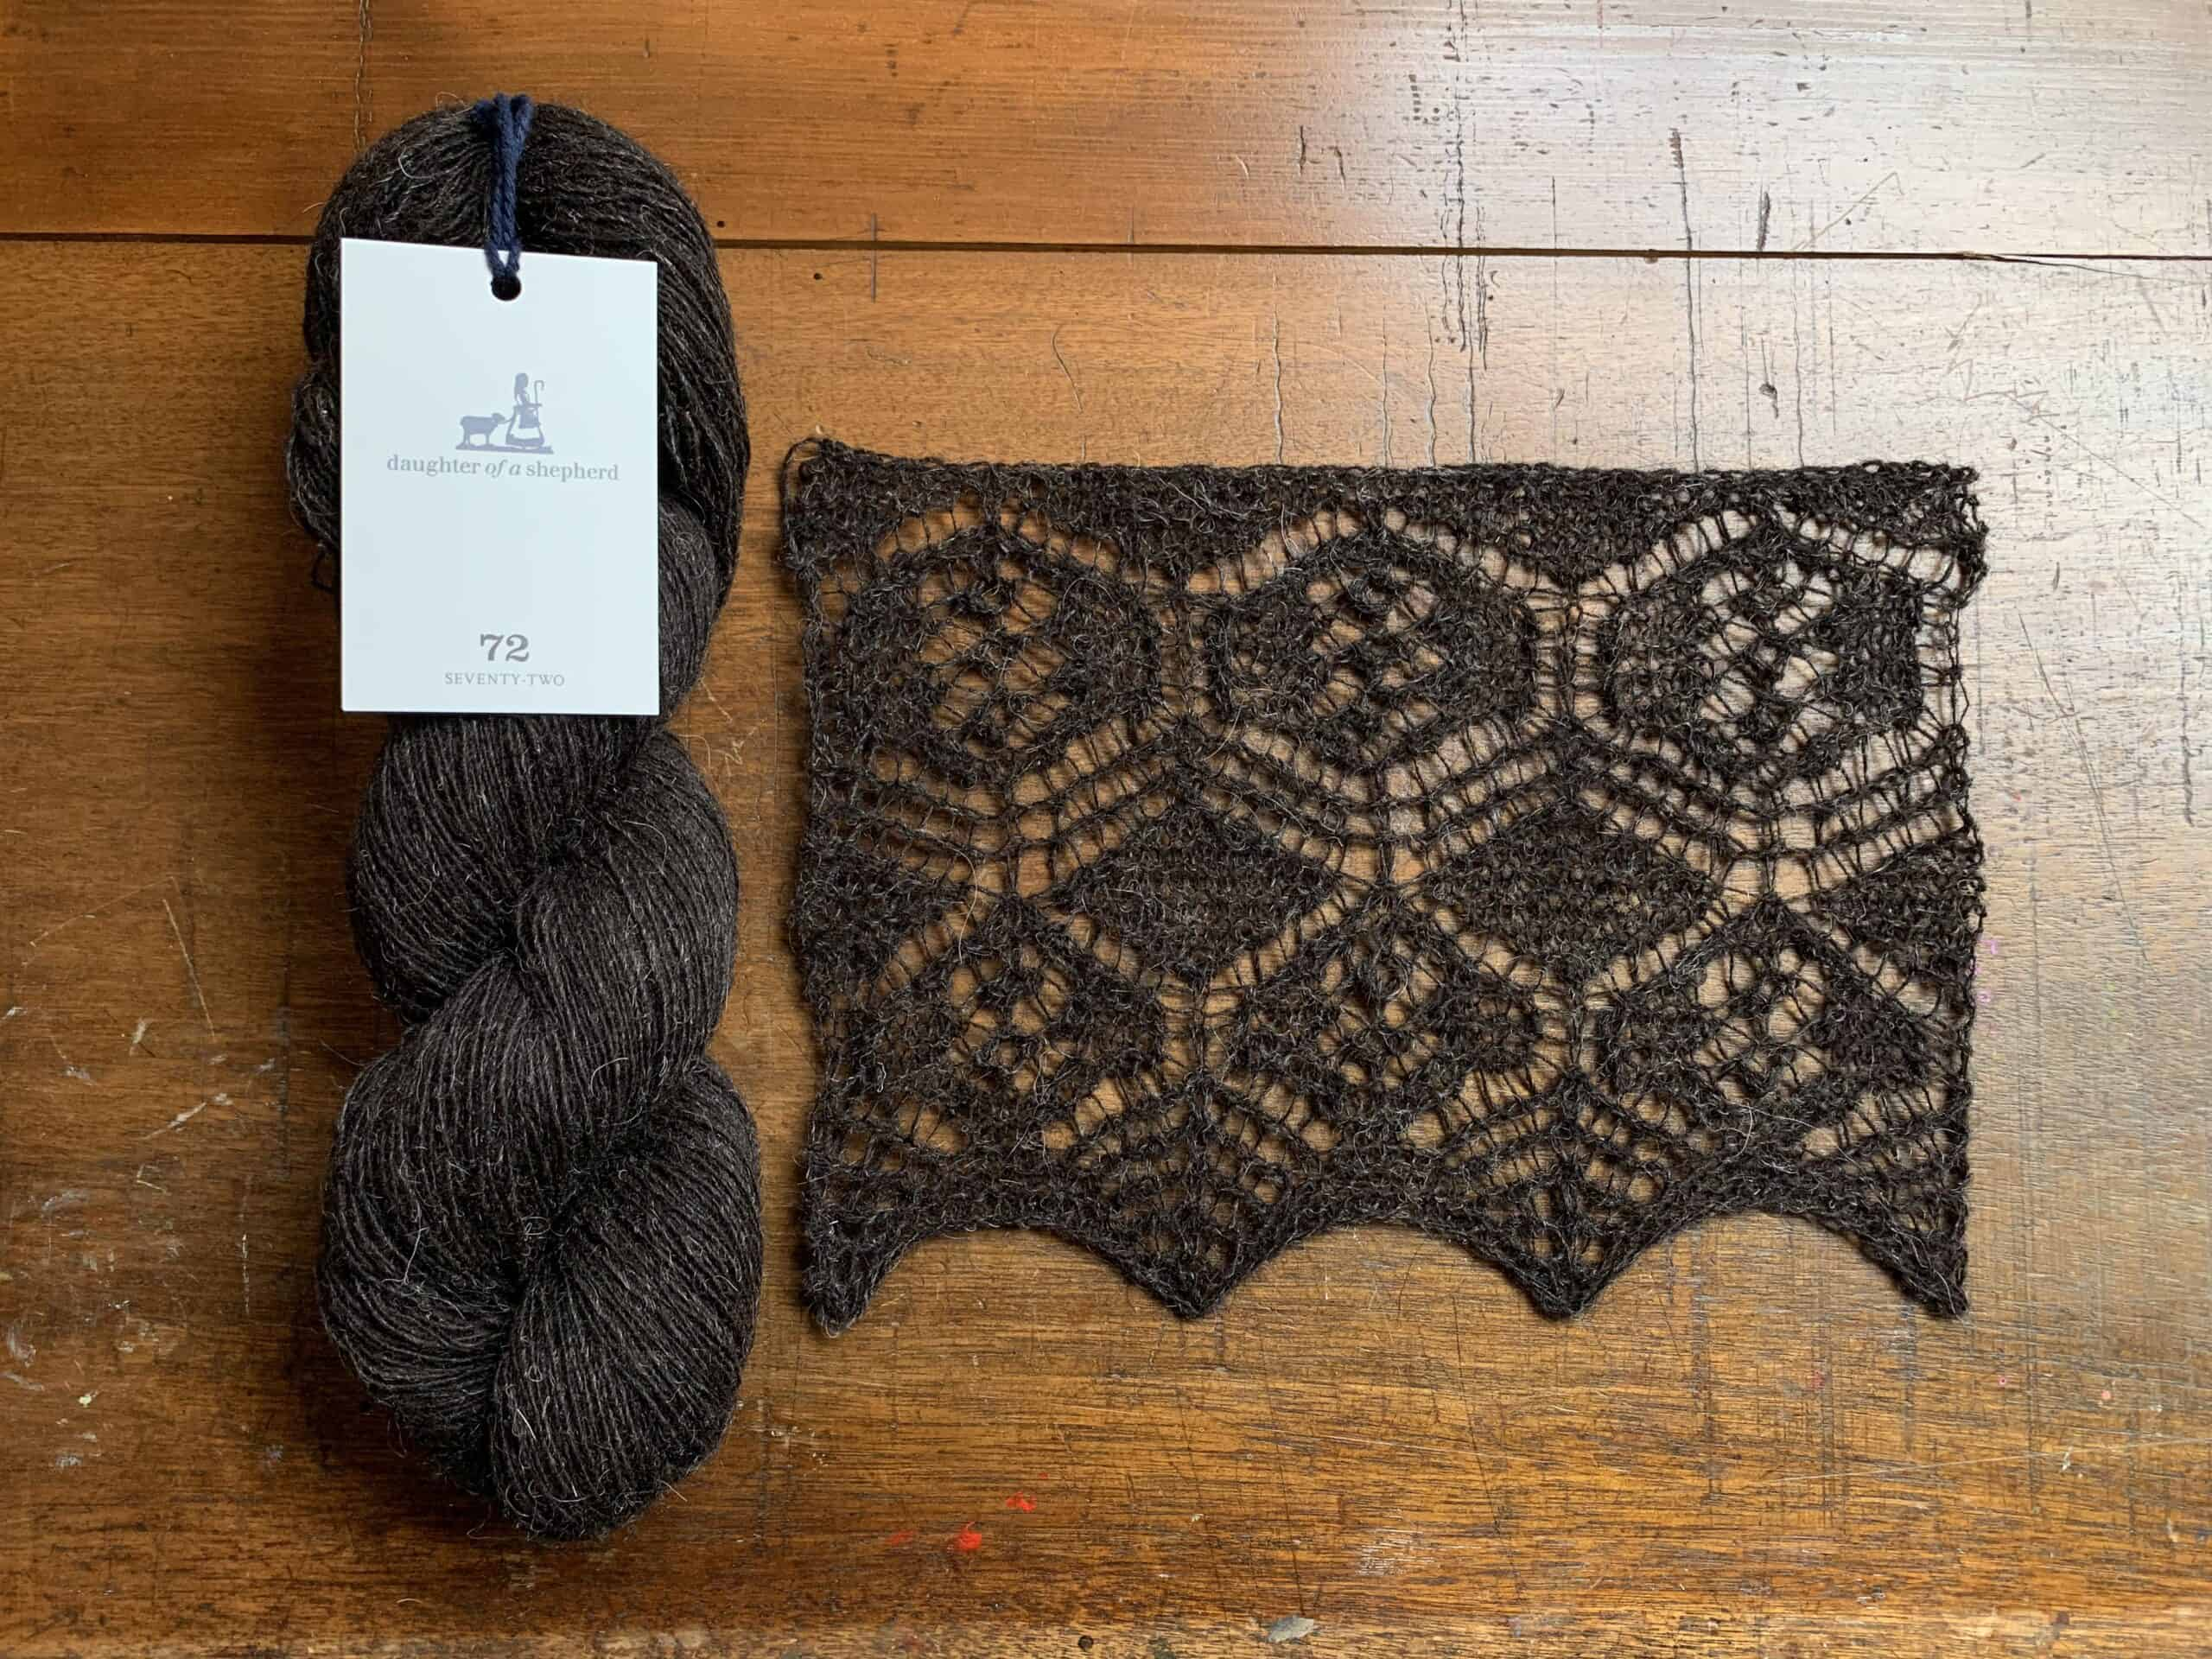 A skein of dark brown yarn and a piece of lace knitting.